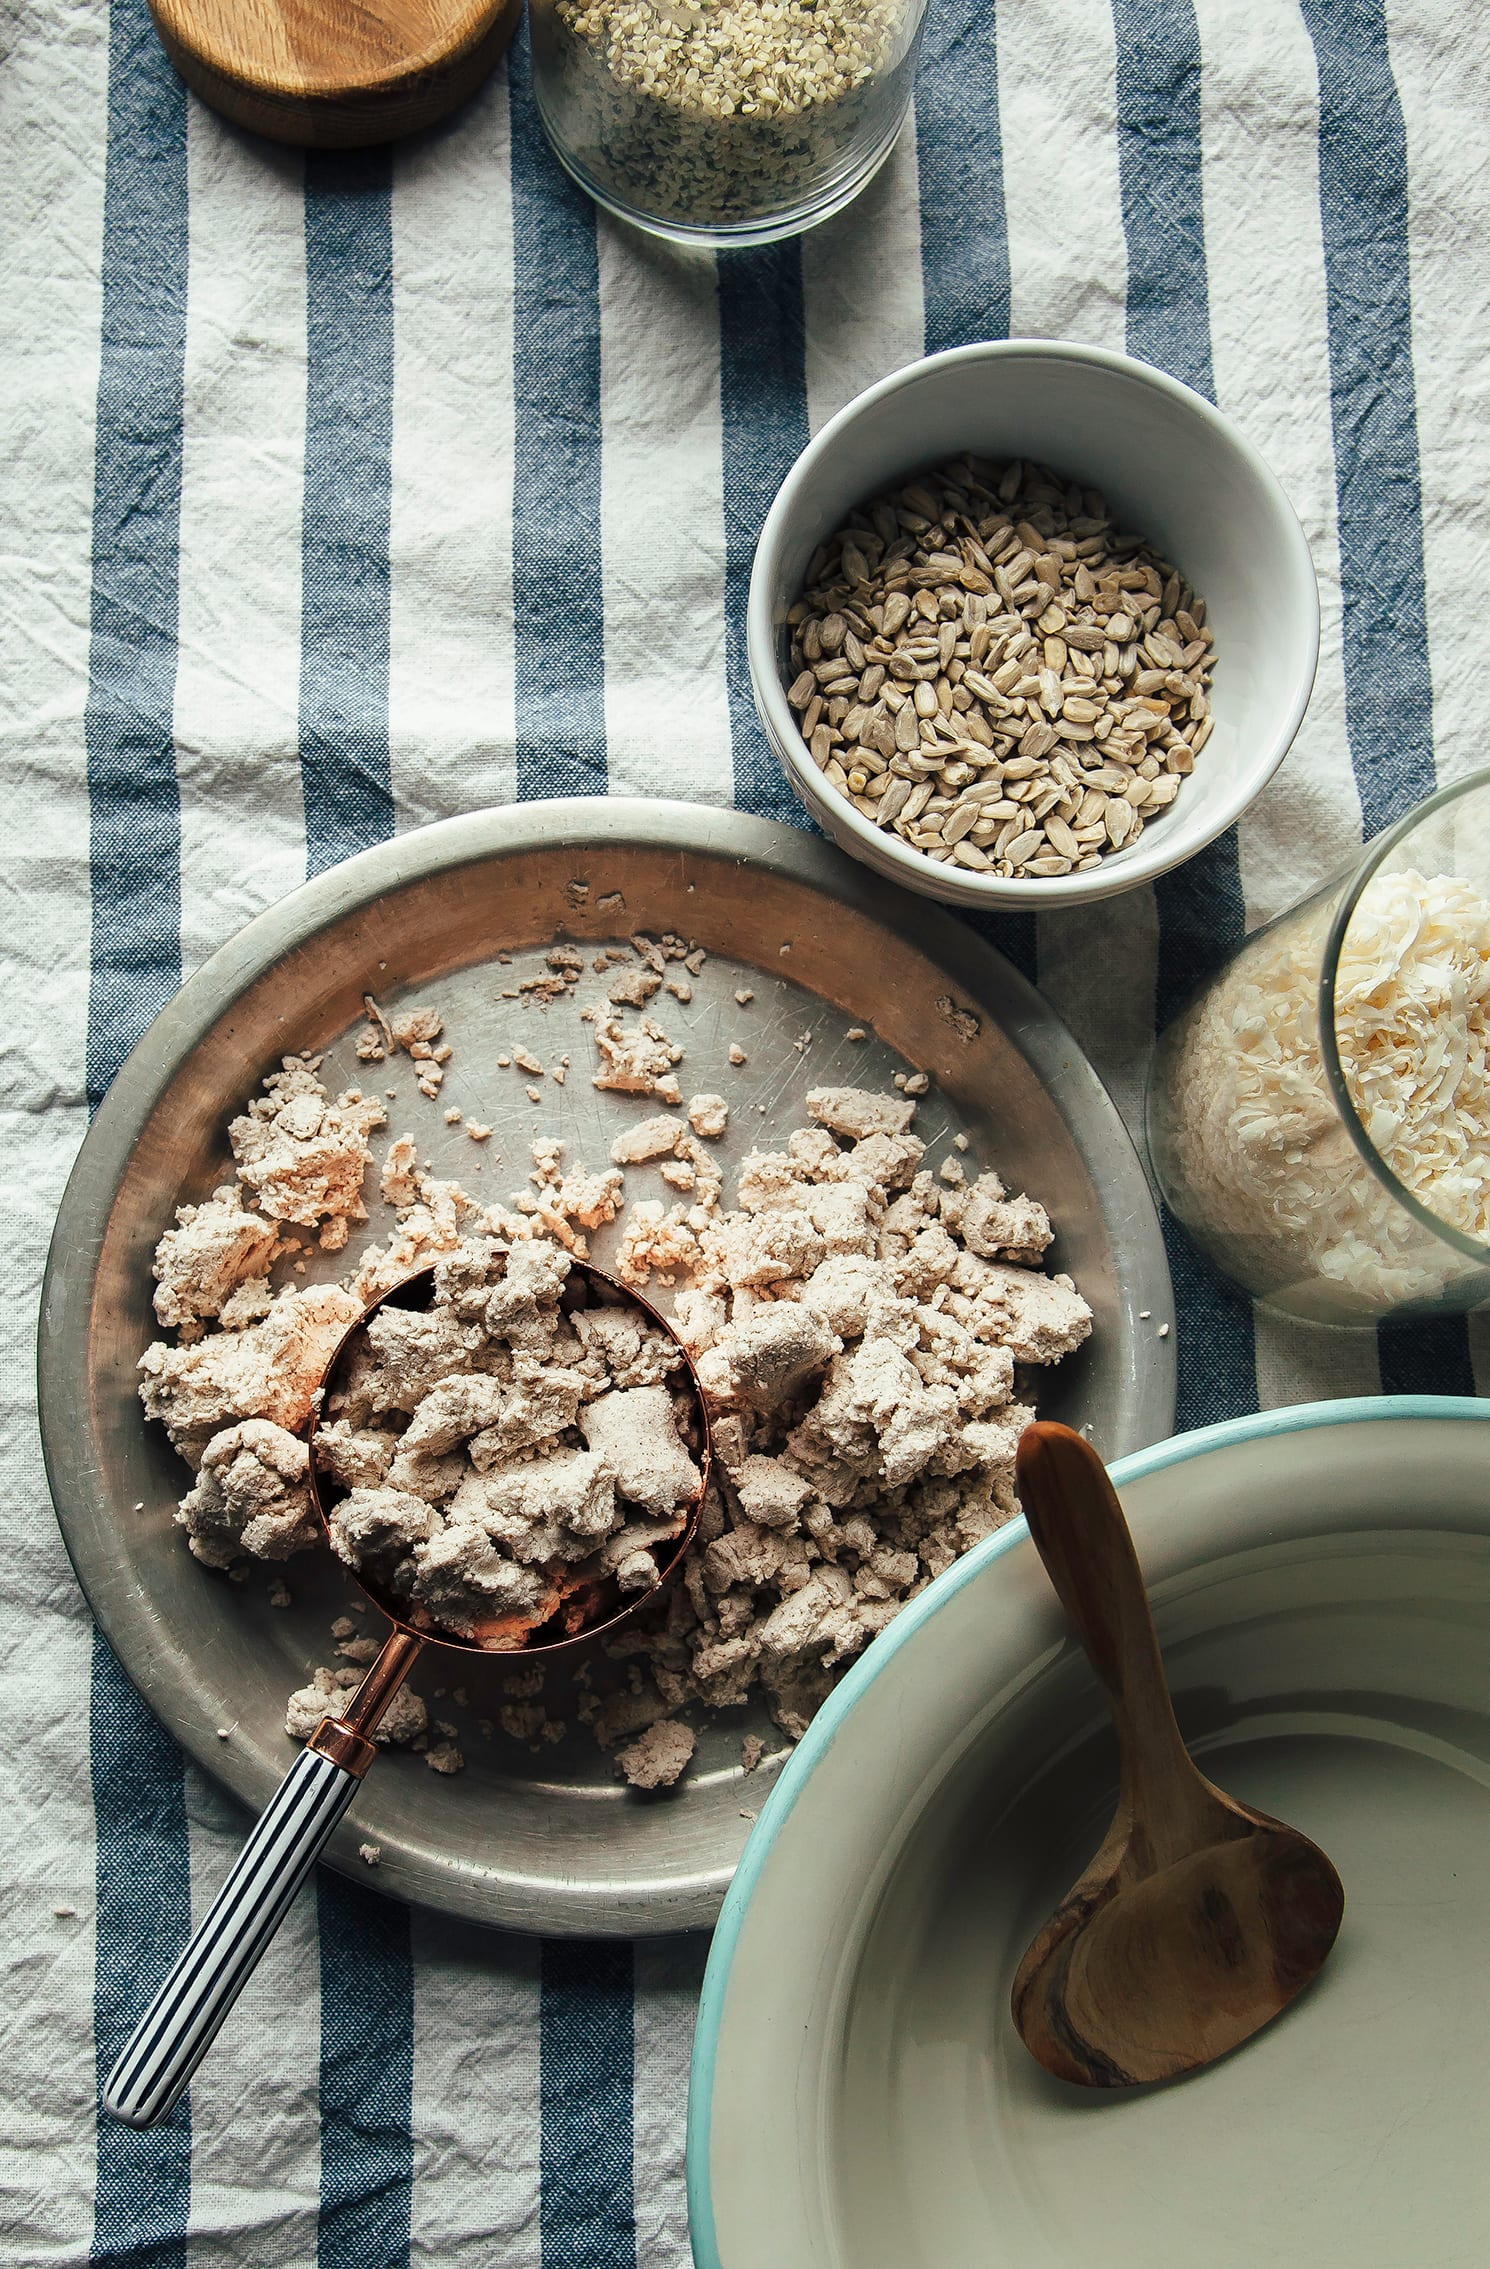 No-Waste Nut Pulp Granola (vegan, grain-free) - The First Mess